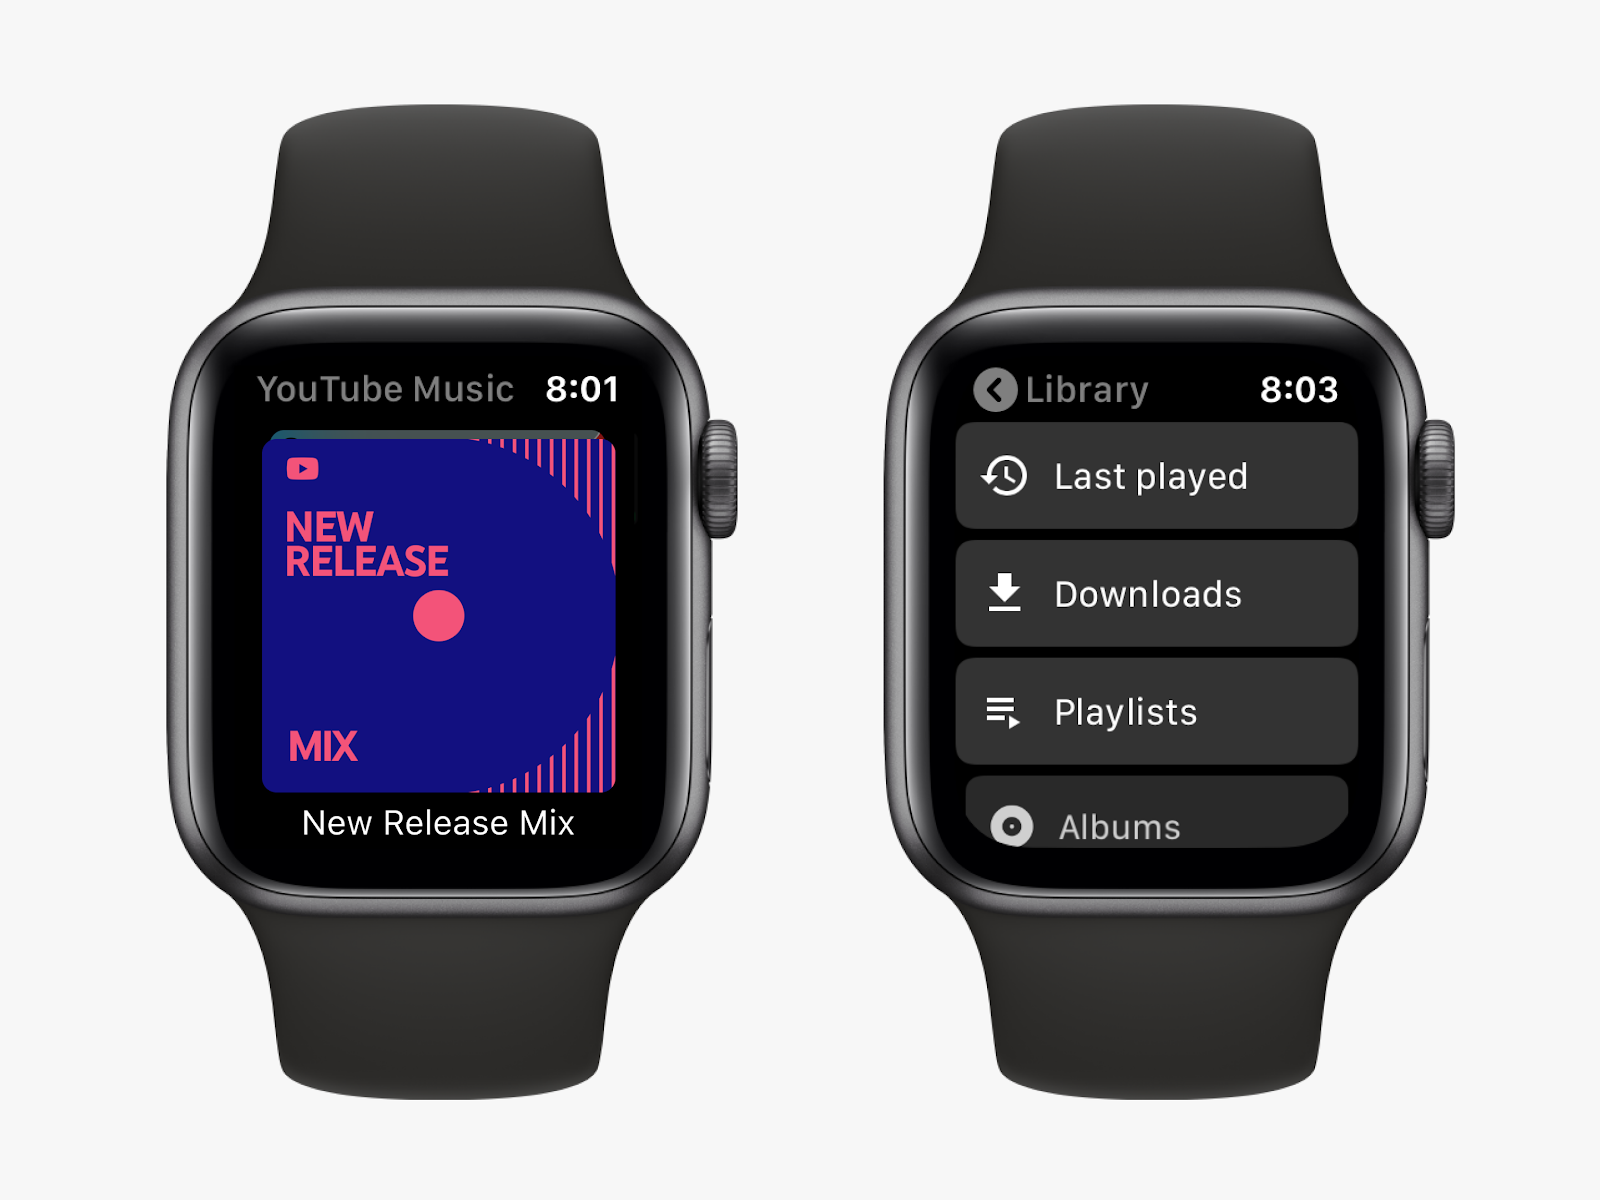 Apple Watch YouTube Music app